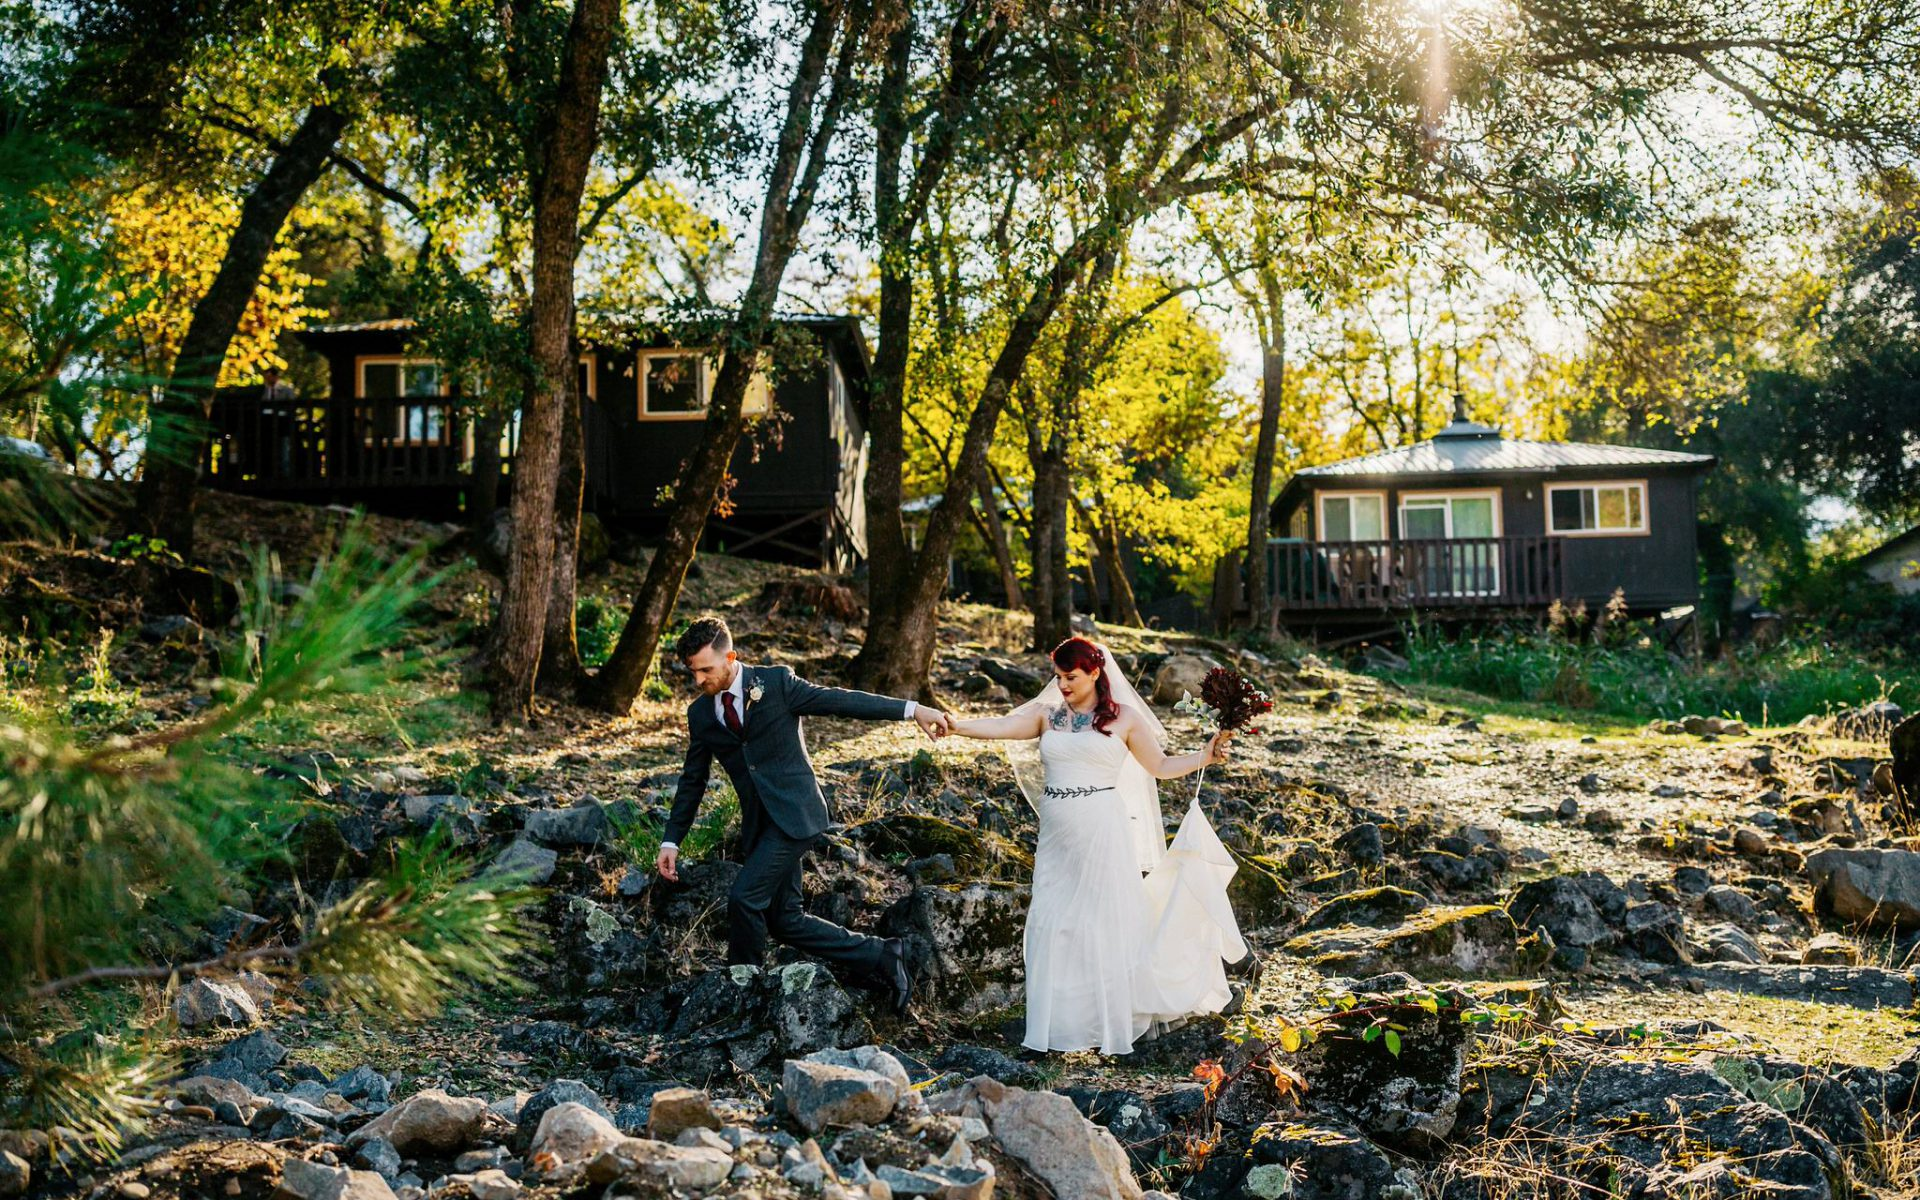 Brandon + Rhiannon - Love on the river!